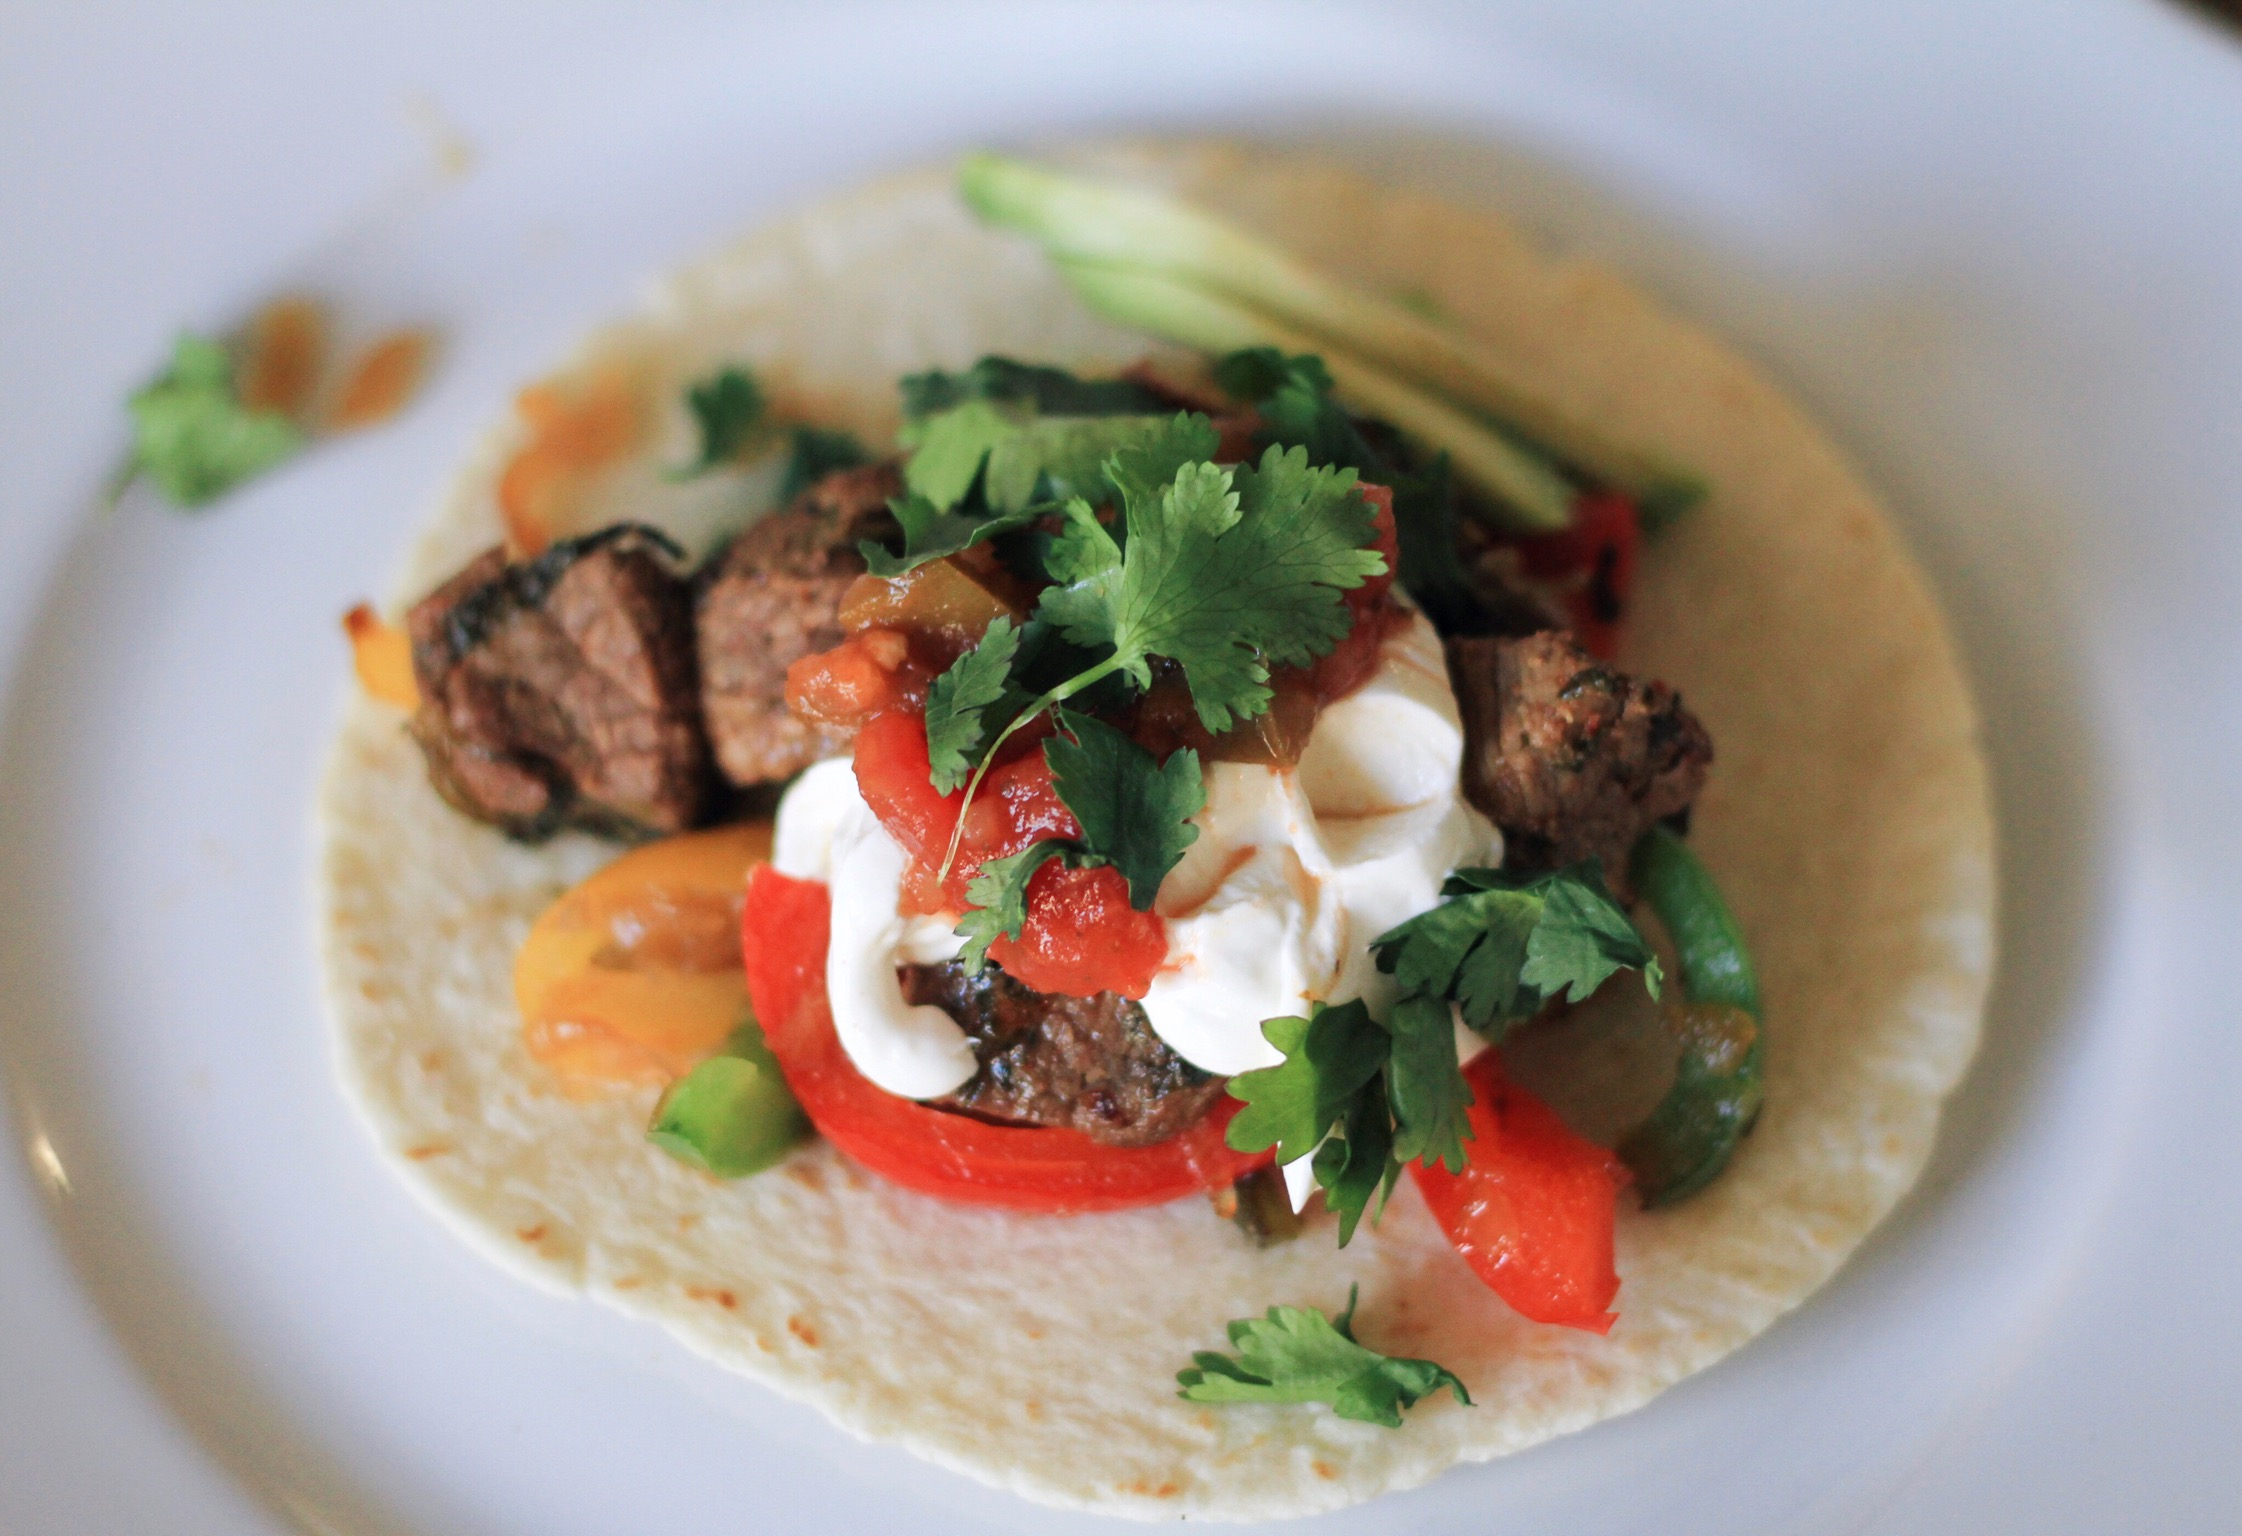 fajitas recipe food mexican food mom blog dad blog mommy blogger family lifestyle traveling with kids wellness zen living, mexico, colombia, USA Virginia Washington DC learning